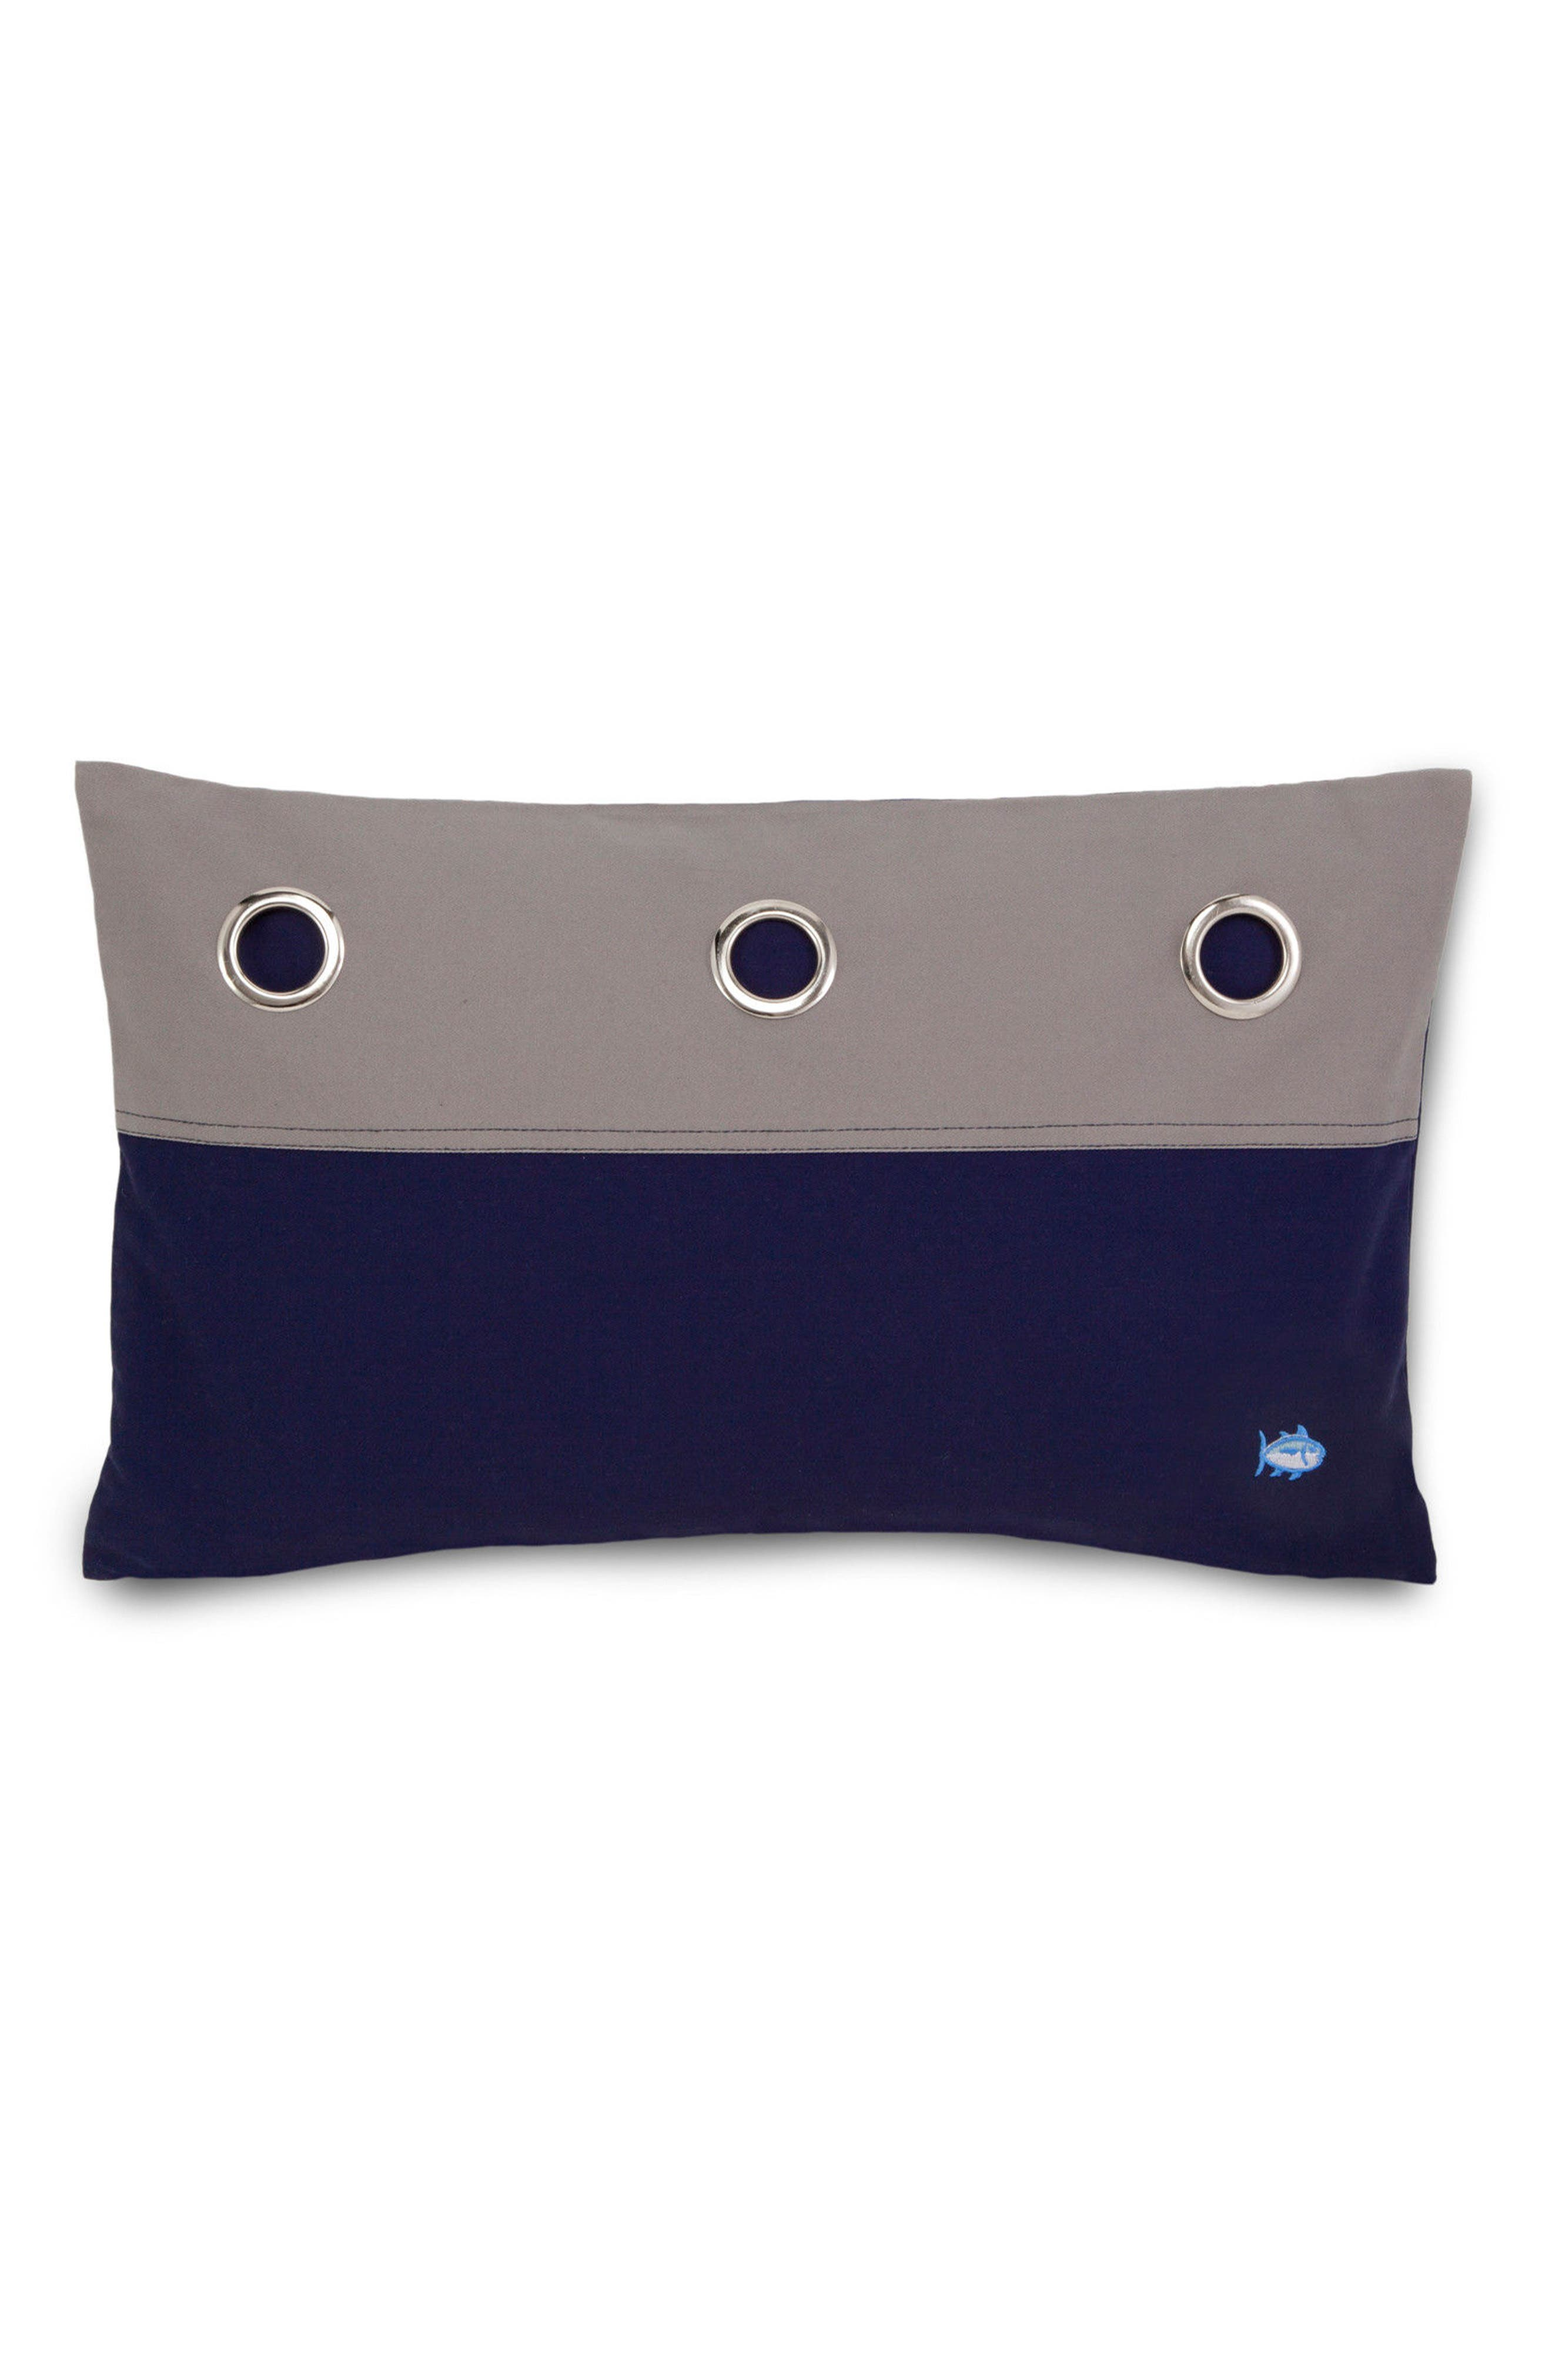 Starboard Grommet Accent Pillow,                             Main thumbnail 1, color,                             020